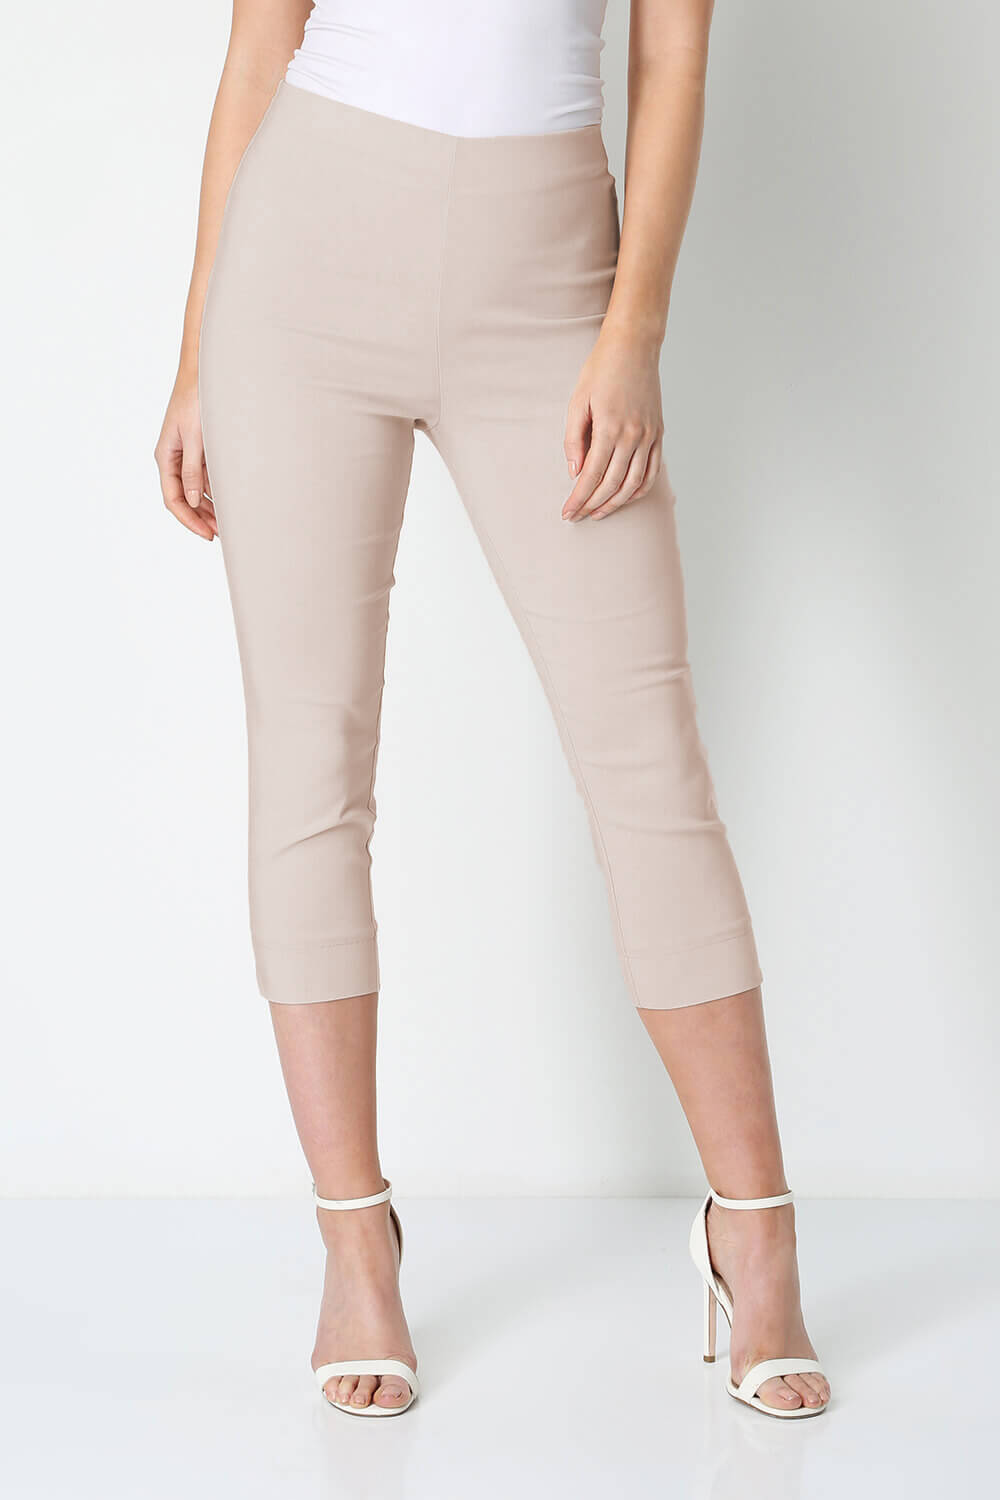 Roman-Originals-Women-Cropped-Stretch-Bengaline-Capri-Trousers-3-4-Thick-Legging 縮圖 199